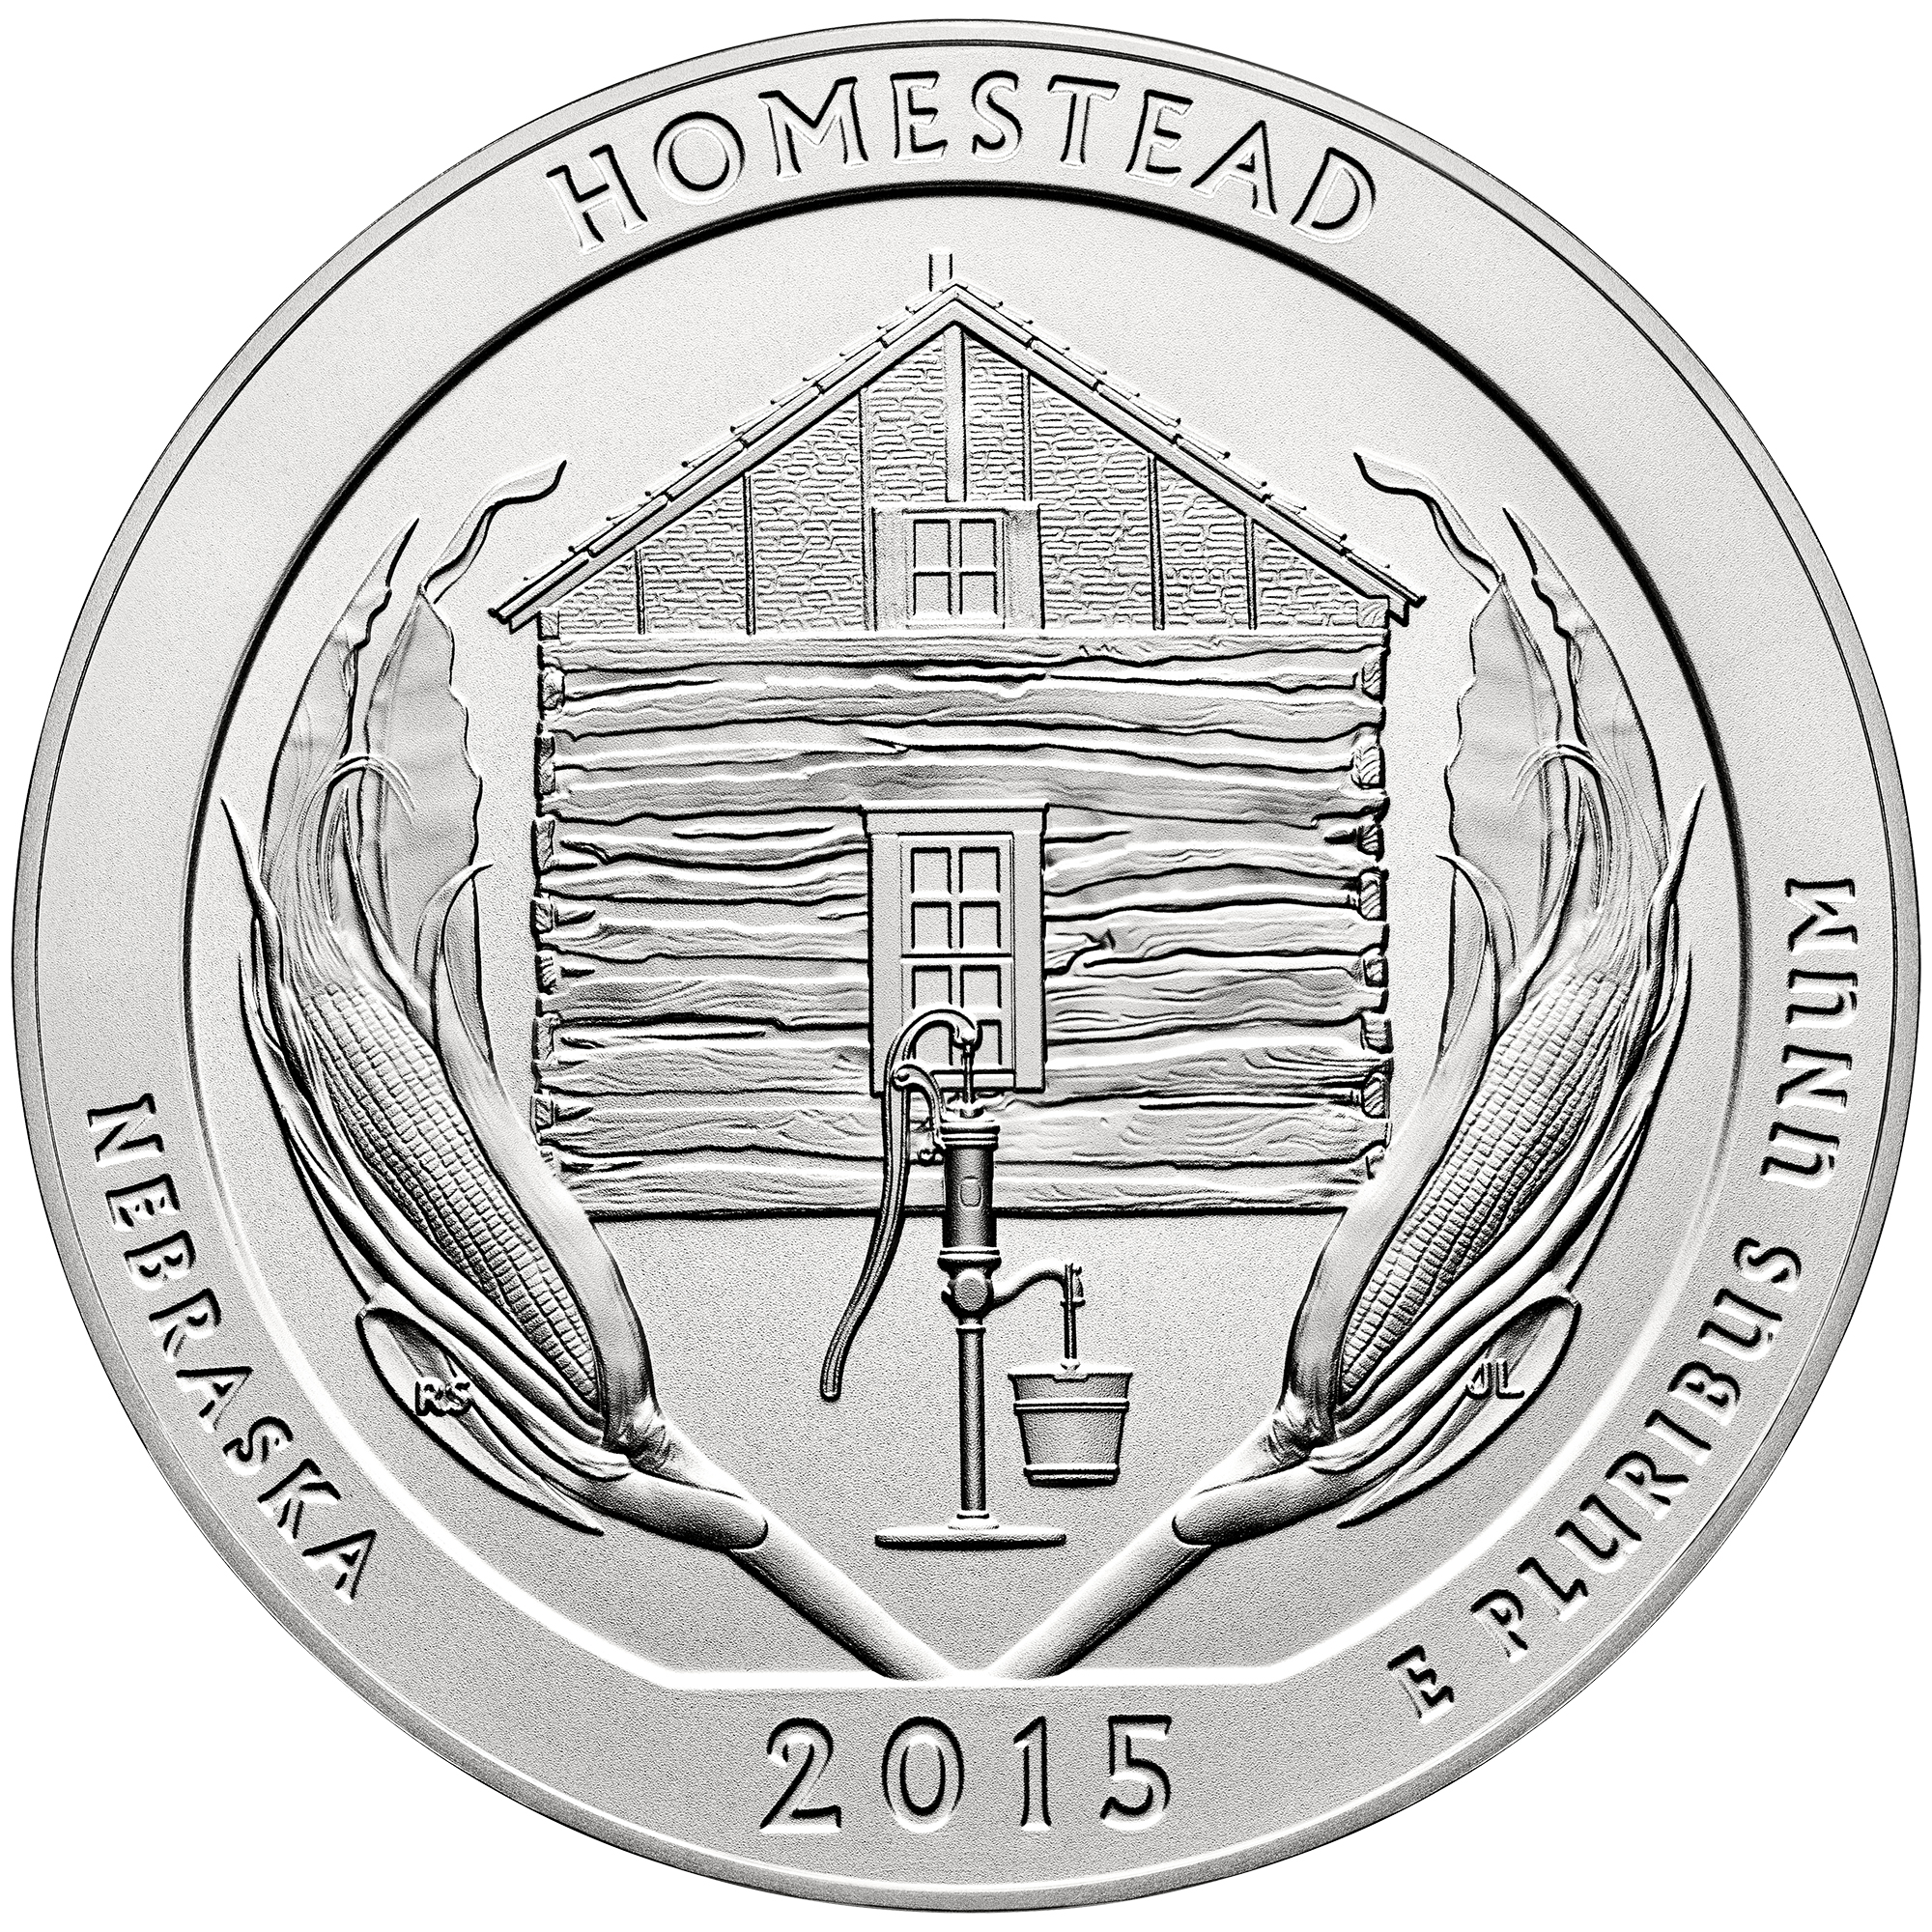 2015 America The Beautiful Quarters Five Ounce Silver Uncirculated Coin Homestead Nebraska Reverse